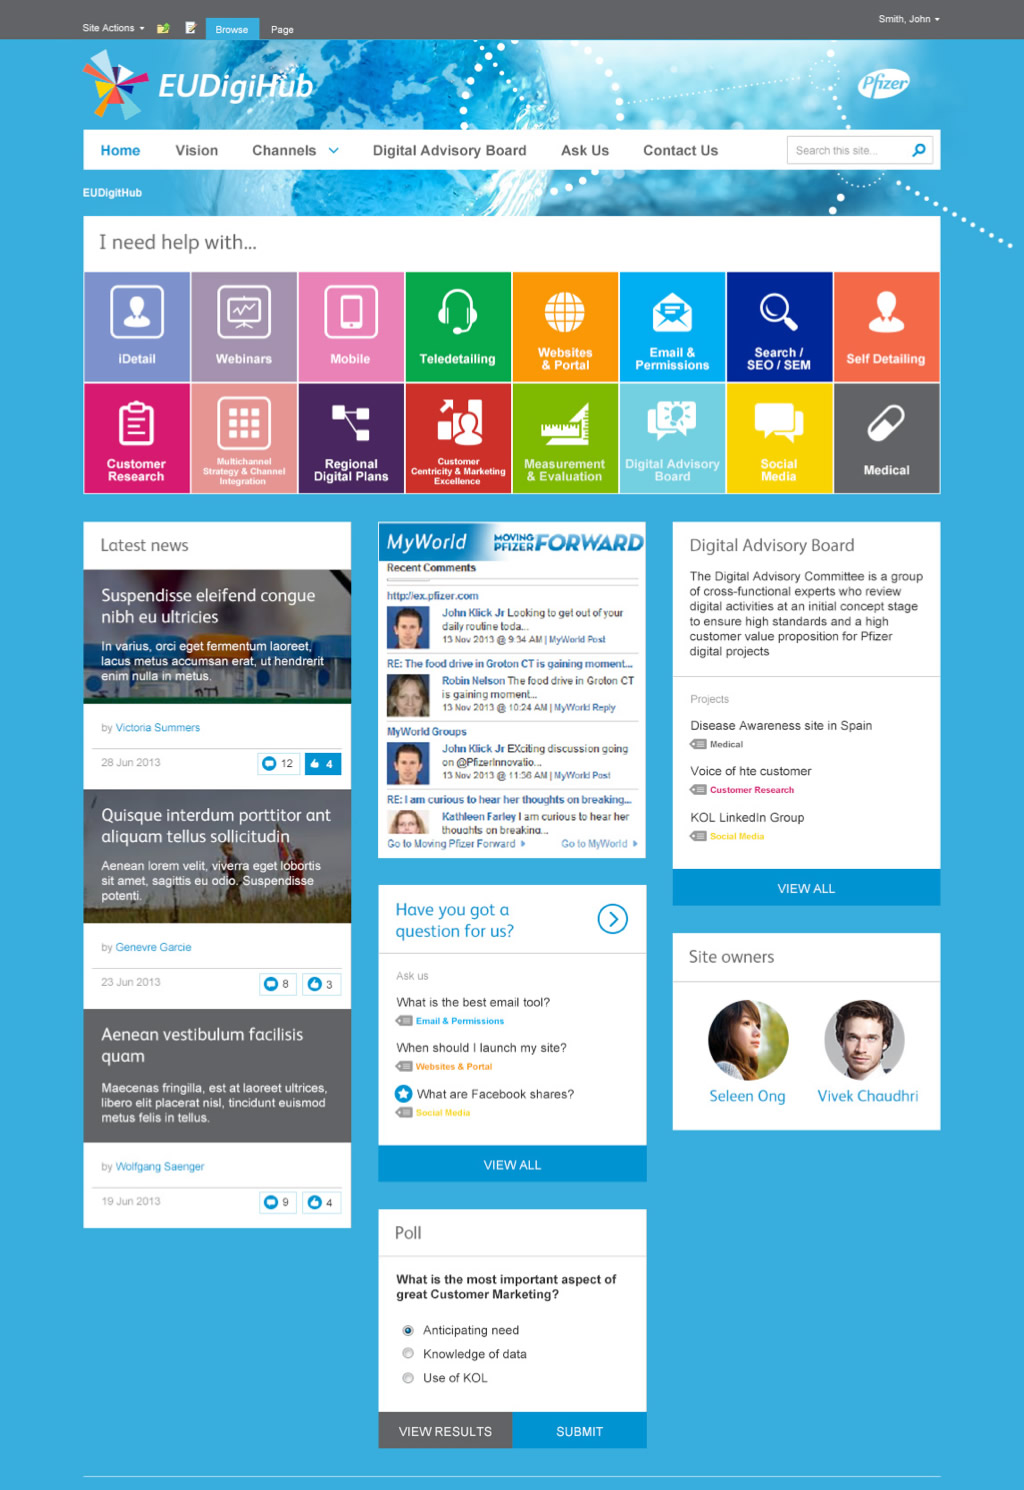 redesigning sharepoint for visual impact and usability